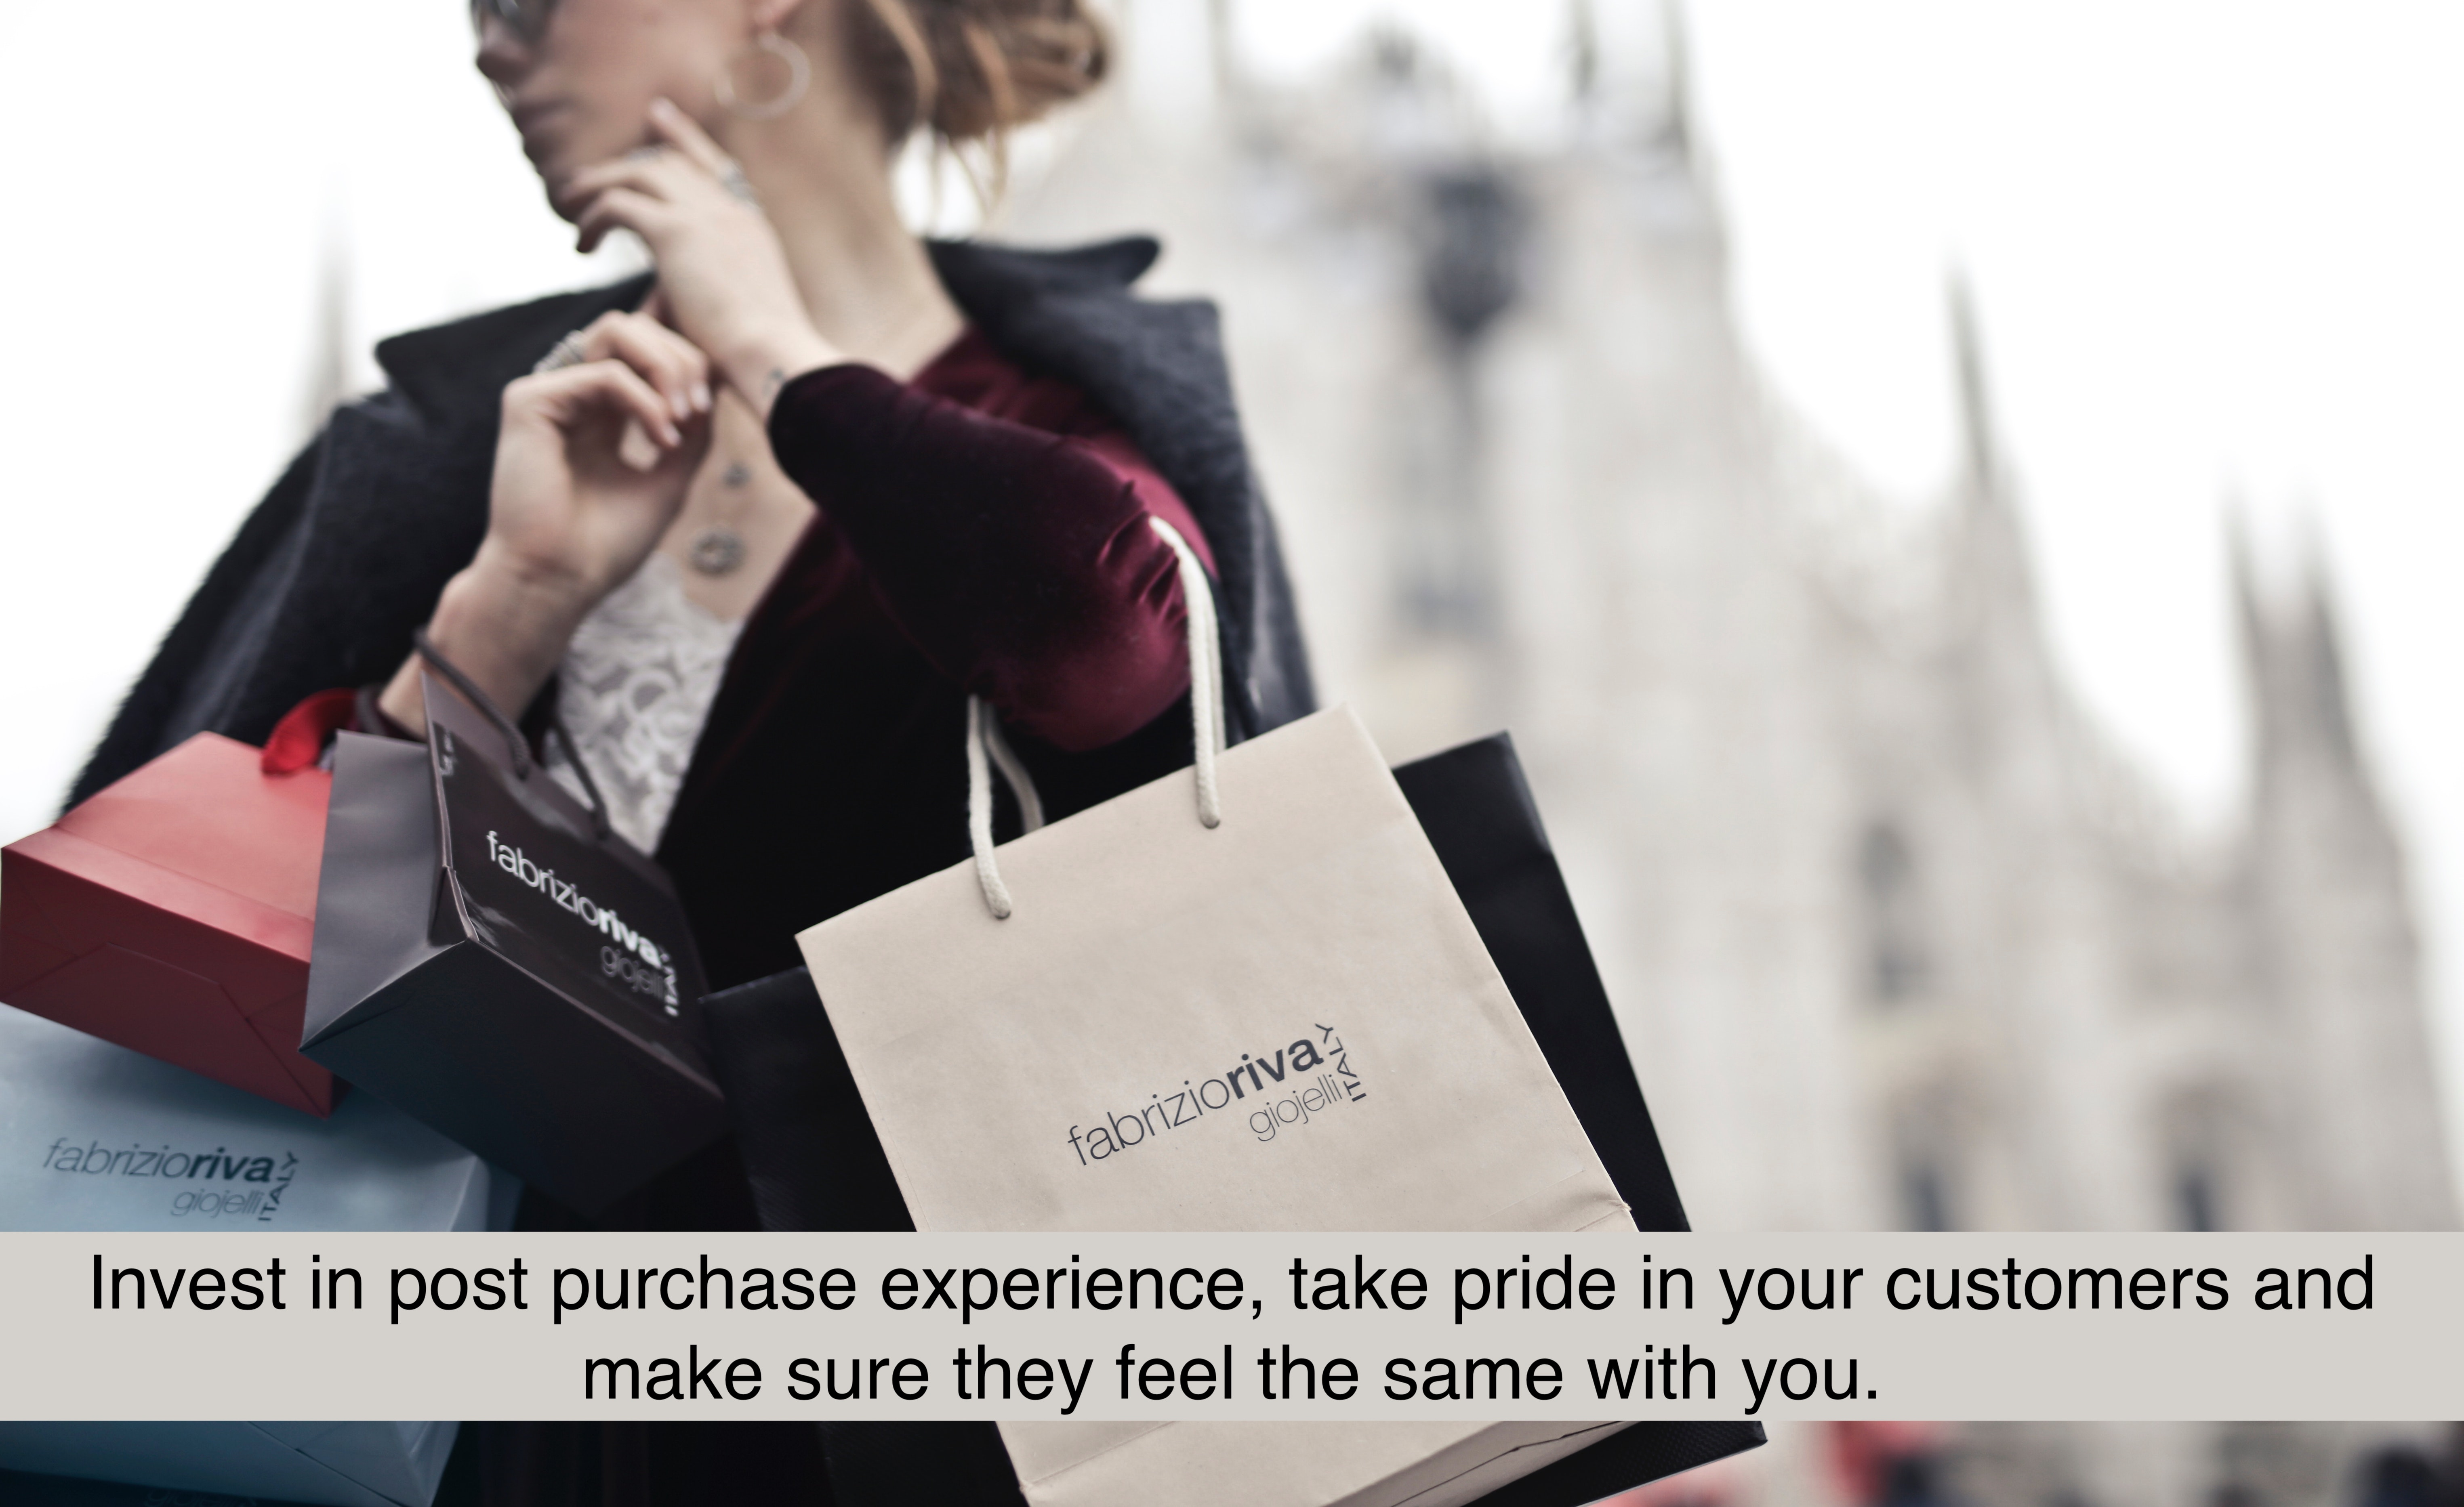 Invest in post purchase experience, take pride in your customers and make sure they feel the same with you.